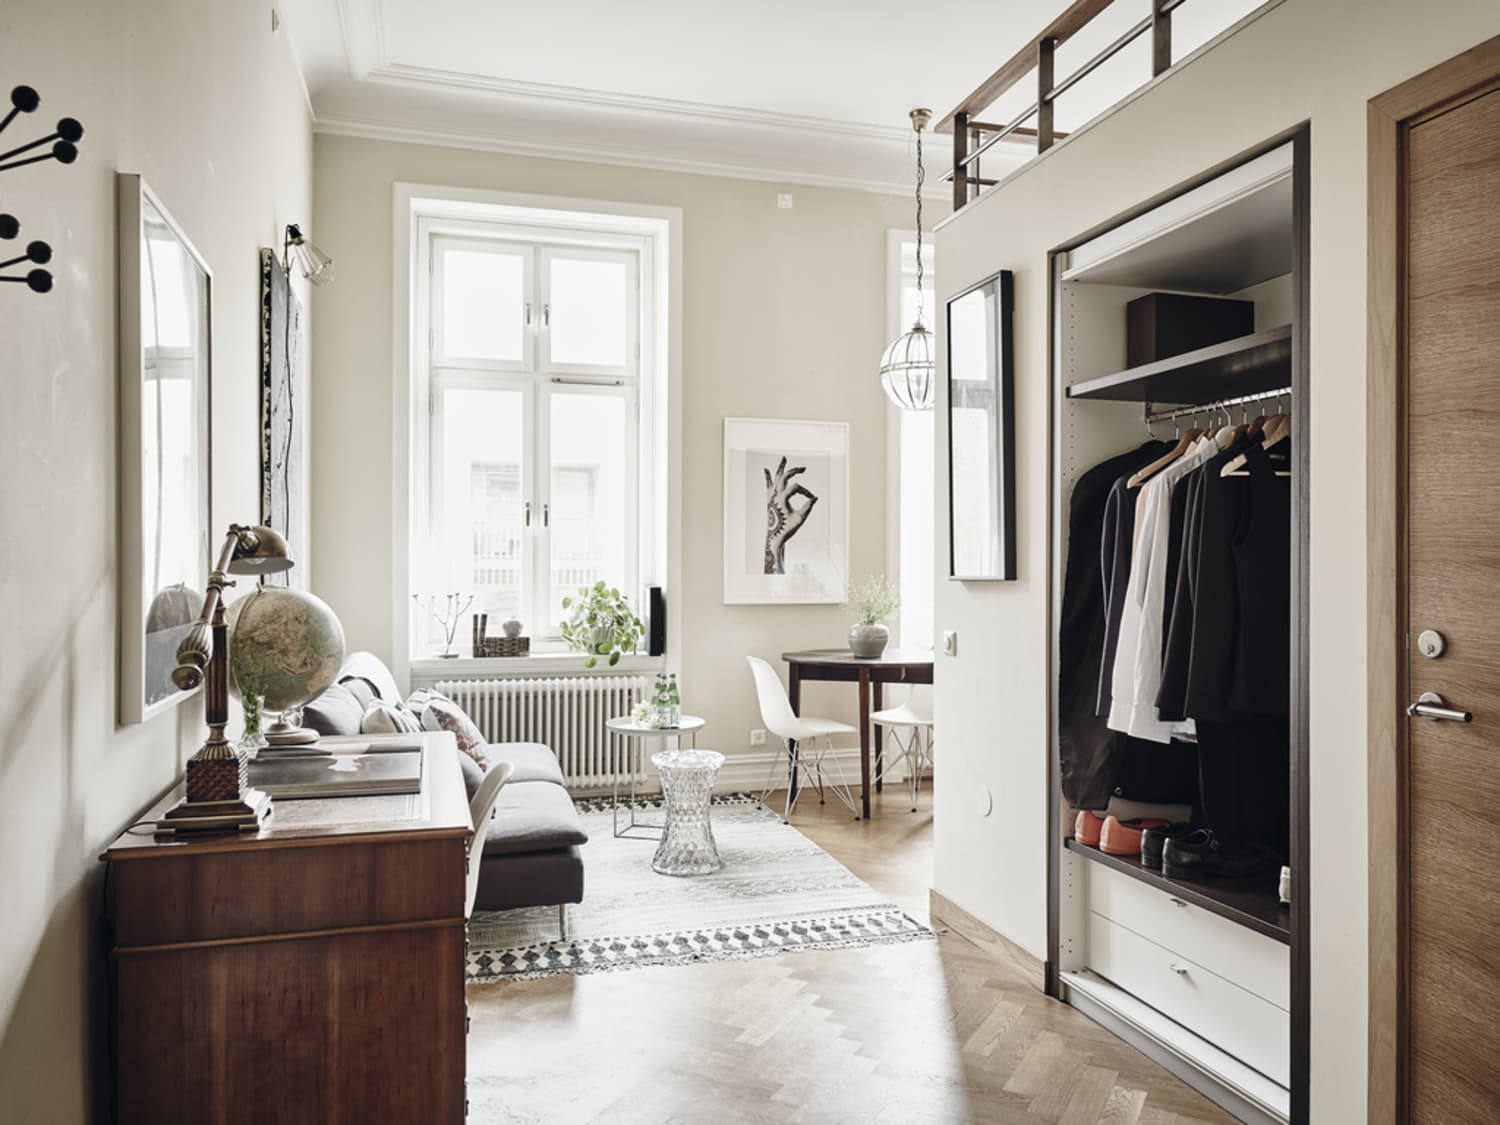 A 365-Square-Foot Swedish Apartment (With a Killer Kitchen)